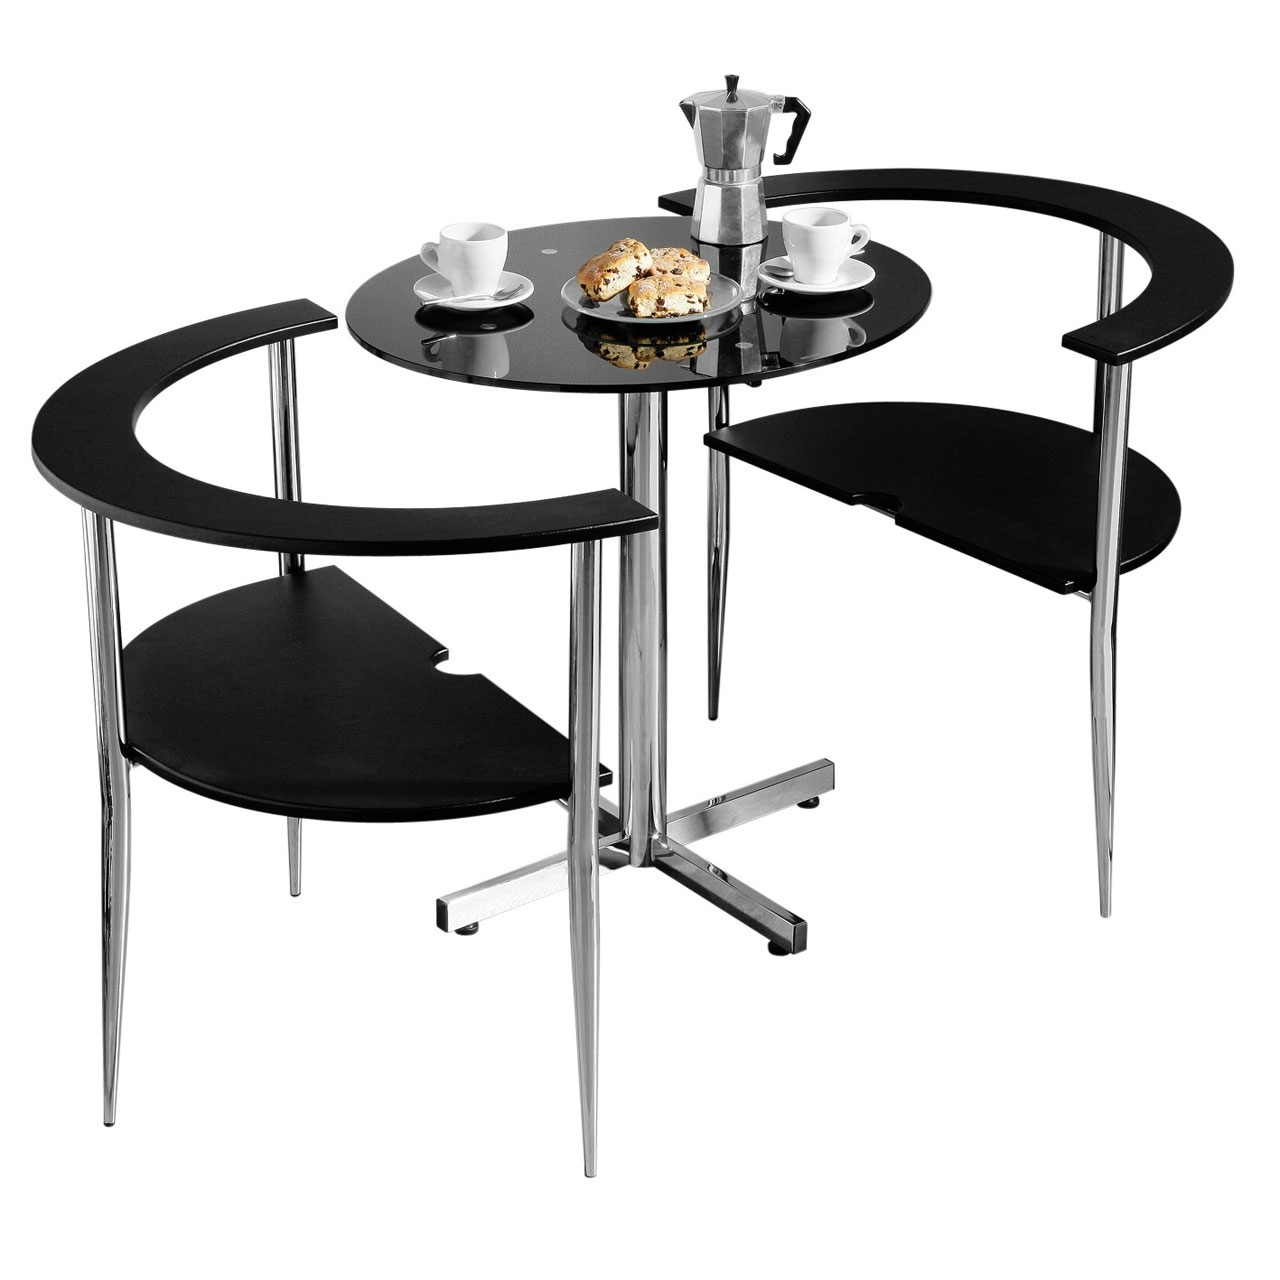 Popular Dining Tables For Two For 3Pc Round Love Dining Set Black Tempered Glass Table Top 2 Chairs (View 17 of 25)